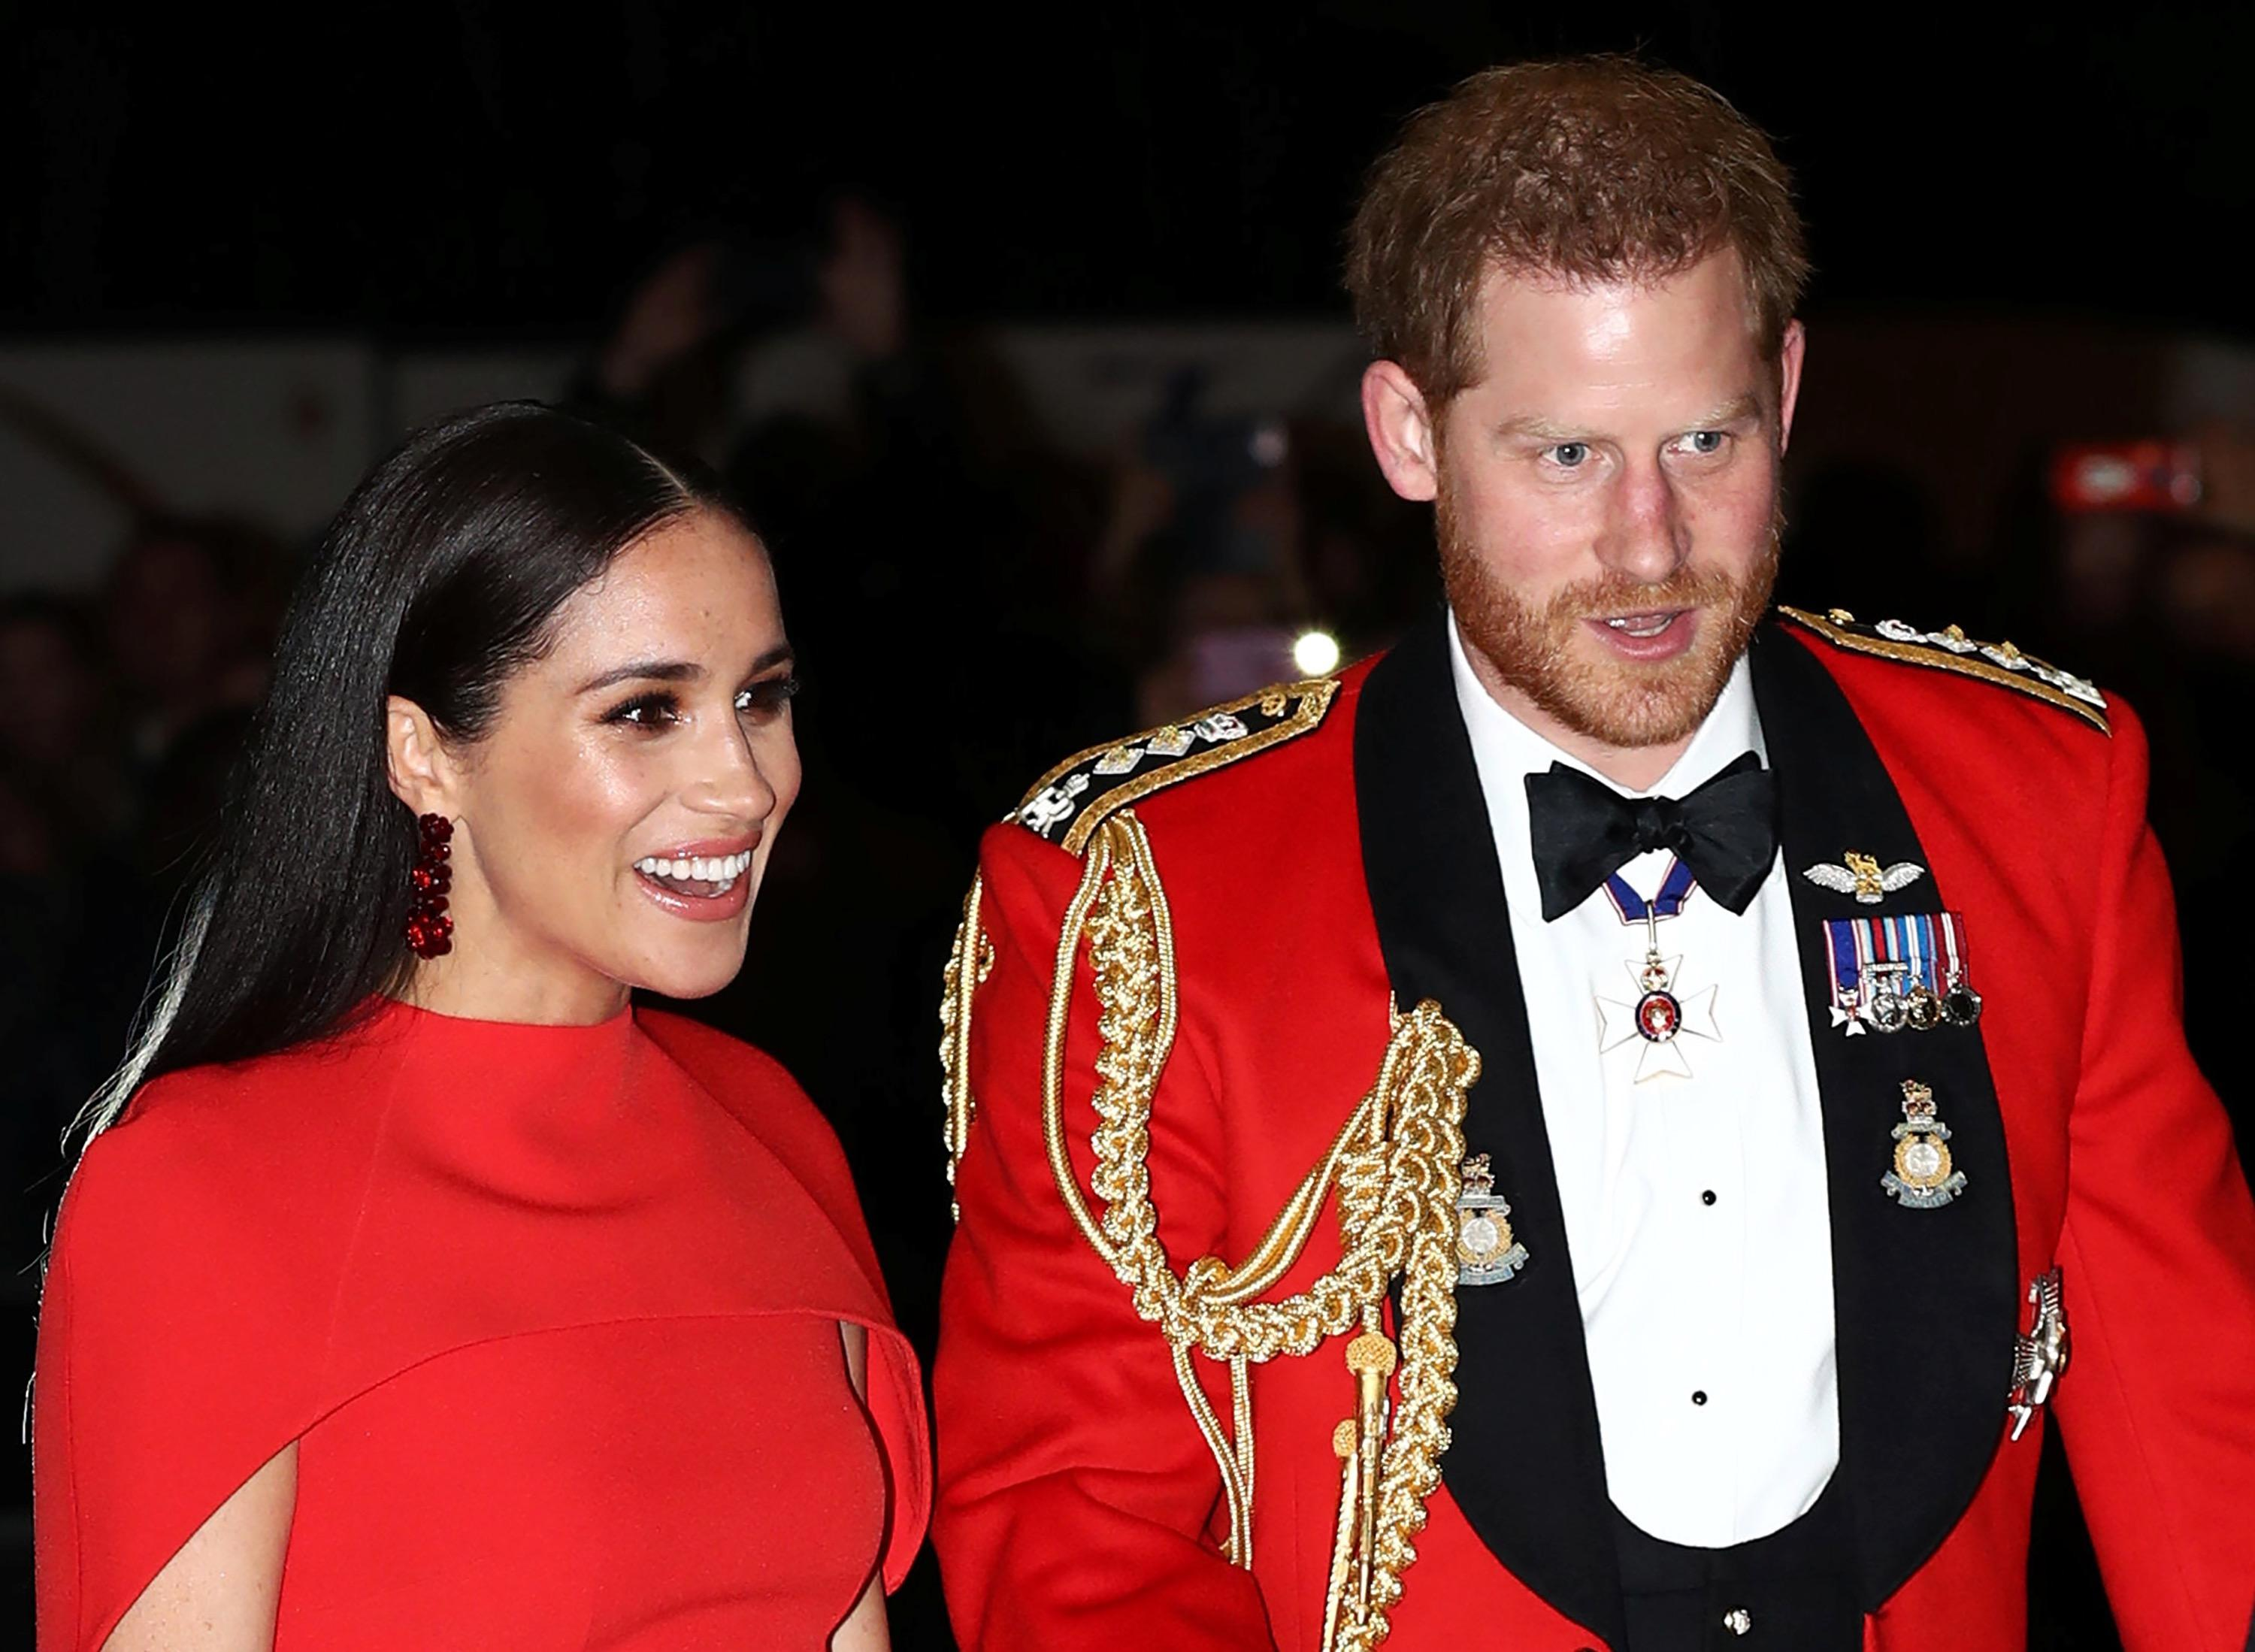 The Latest on all the Royals Drama